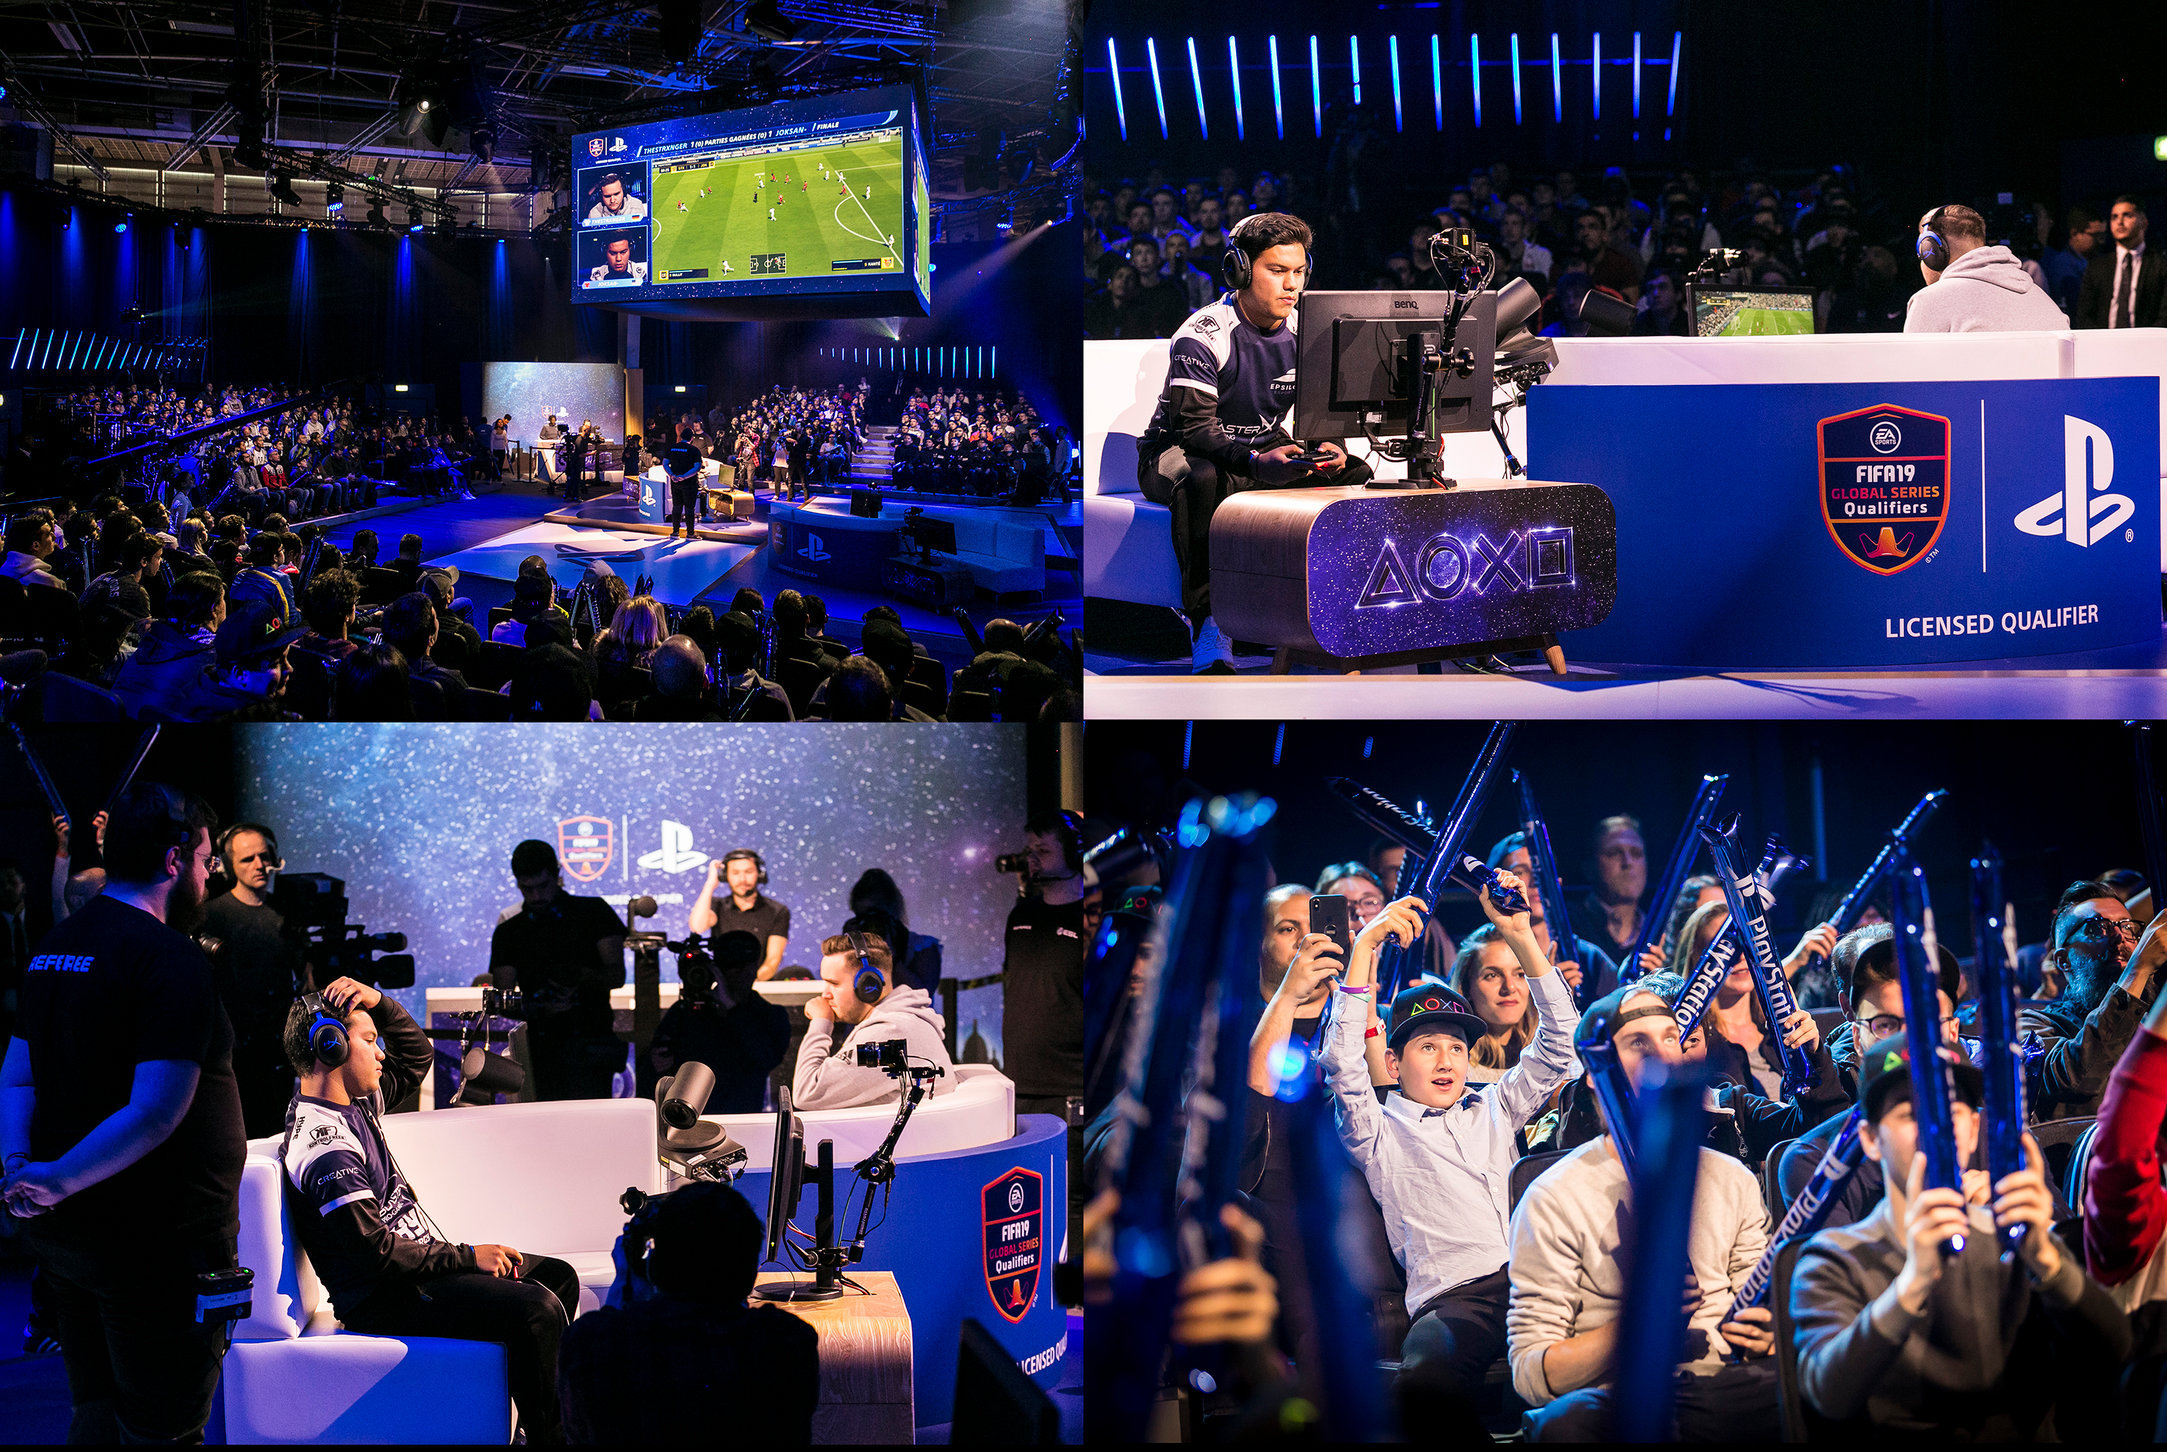 0004_Playstation@PGW2018-esports-final-1253-HighRes.jpg